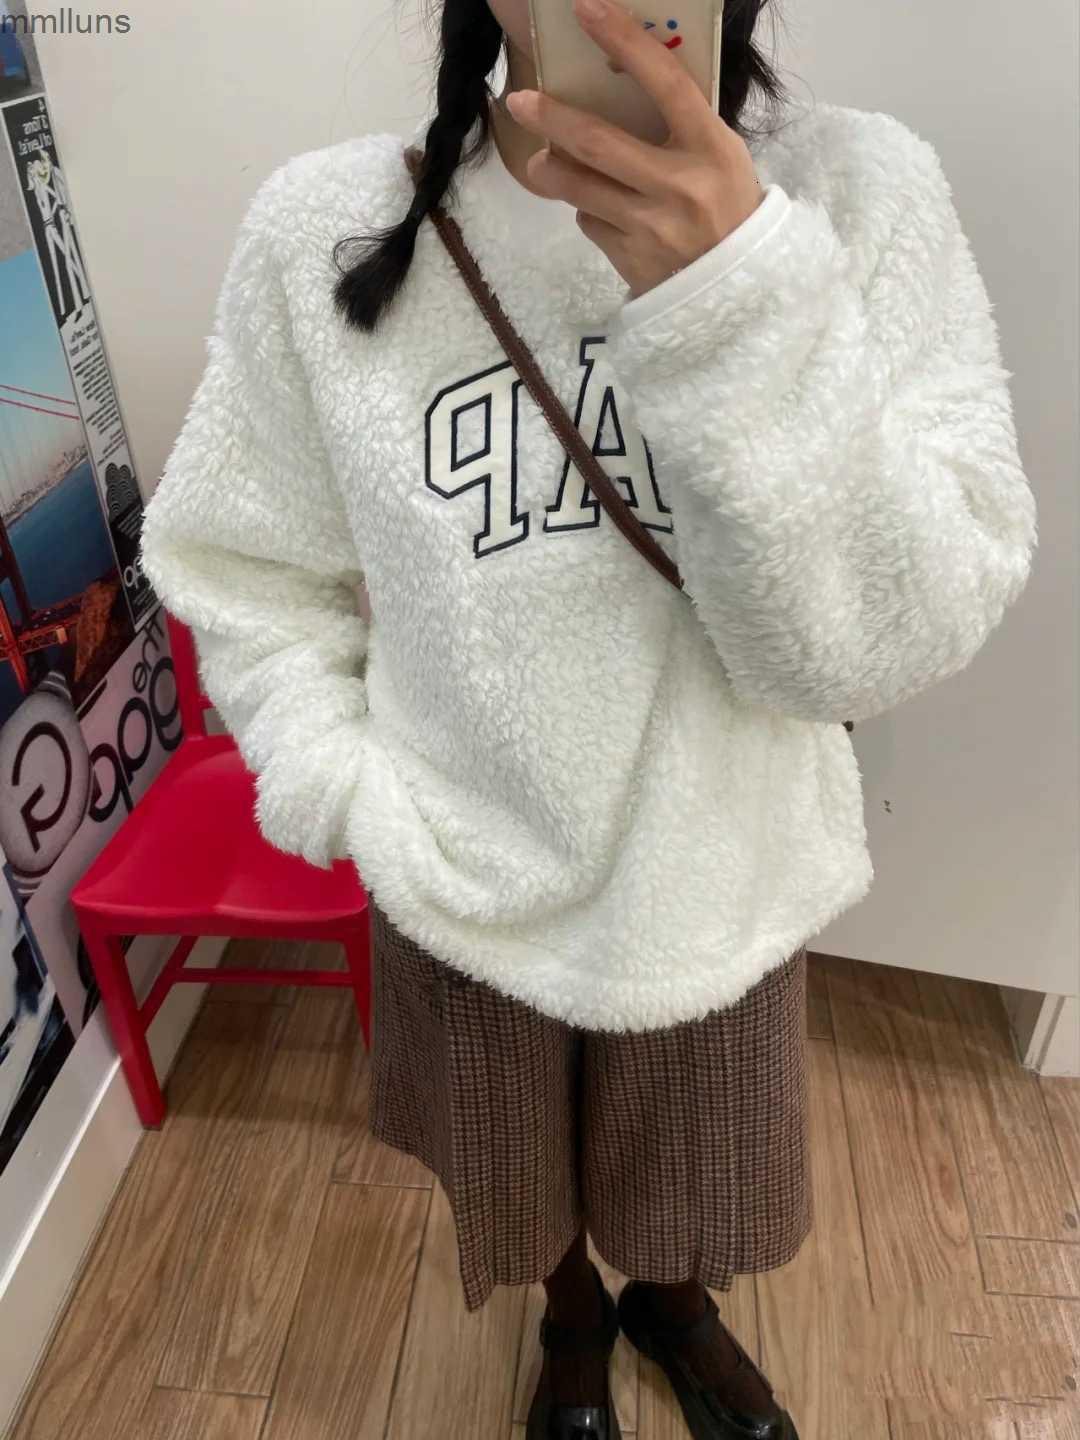 letter Gap clothing Oioi autumn and winter embroidery cashmere Plush warm round neck long sleeve sweater women